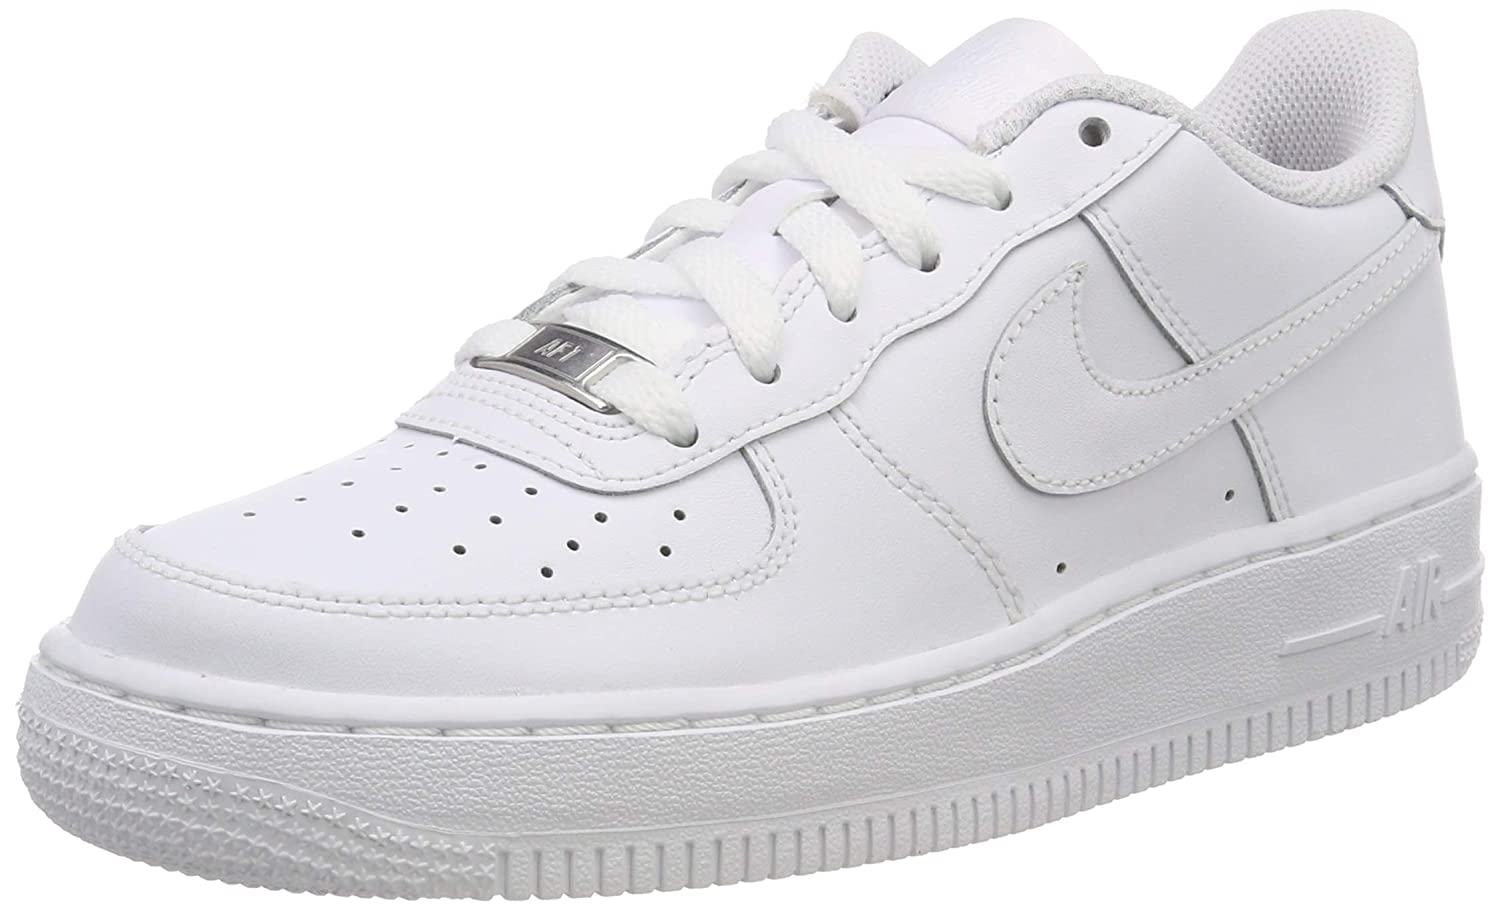 6ad57dc117dbce Amazon.com  Nike Air Force 1 Low GS Lifestyle Sneakers  NIKE  Shoes